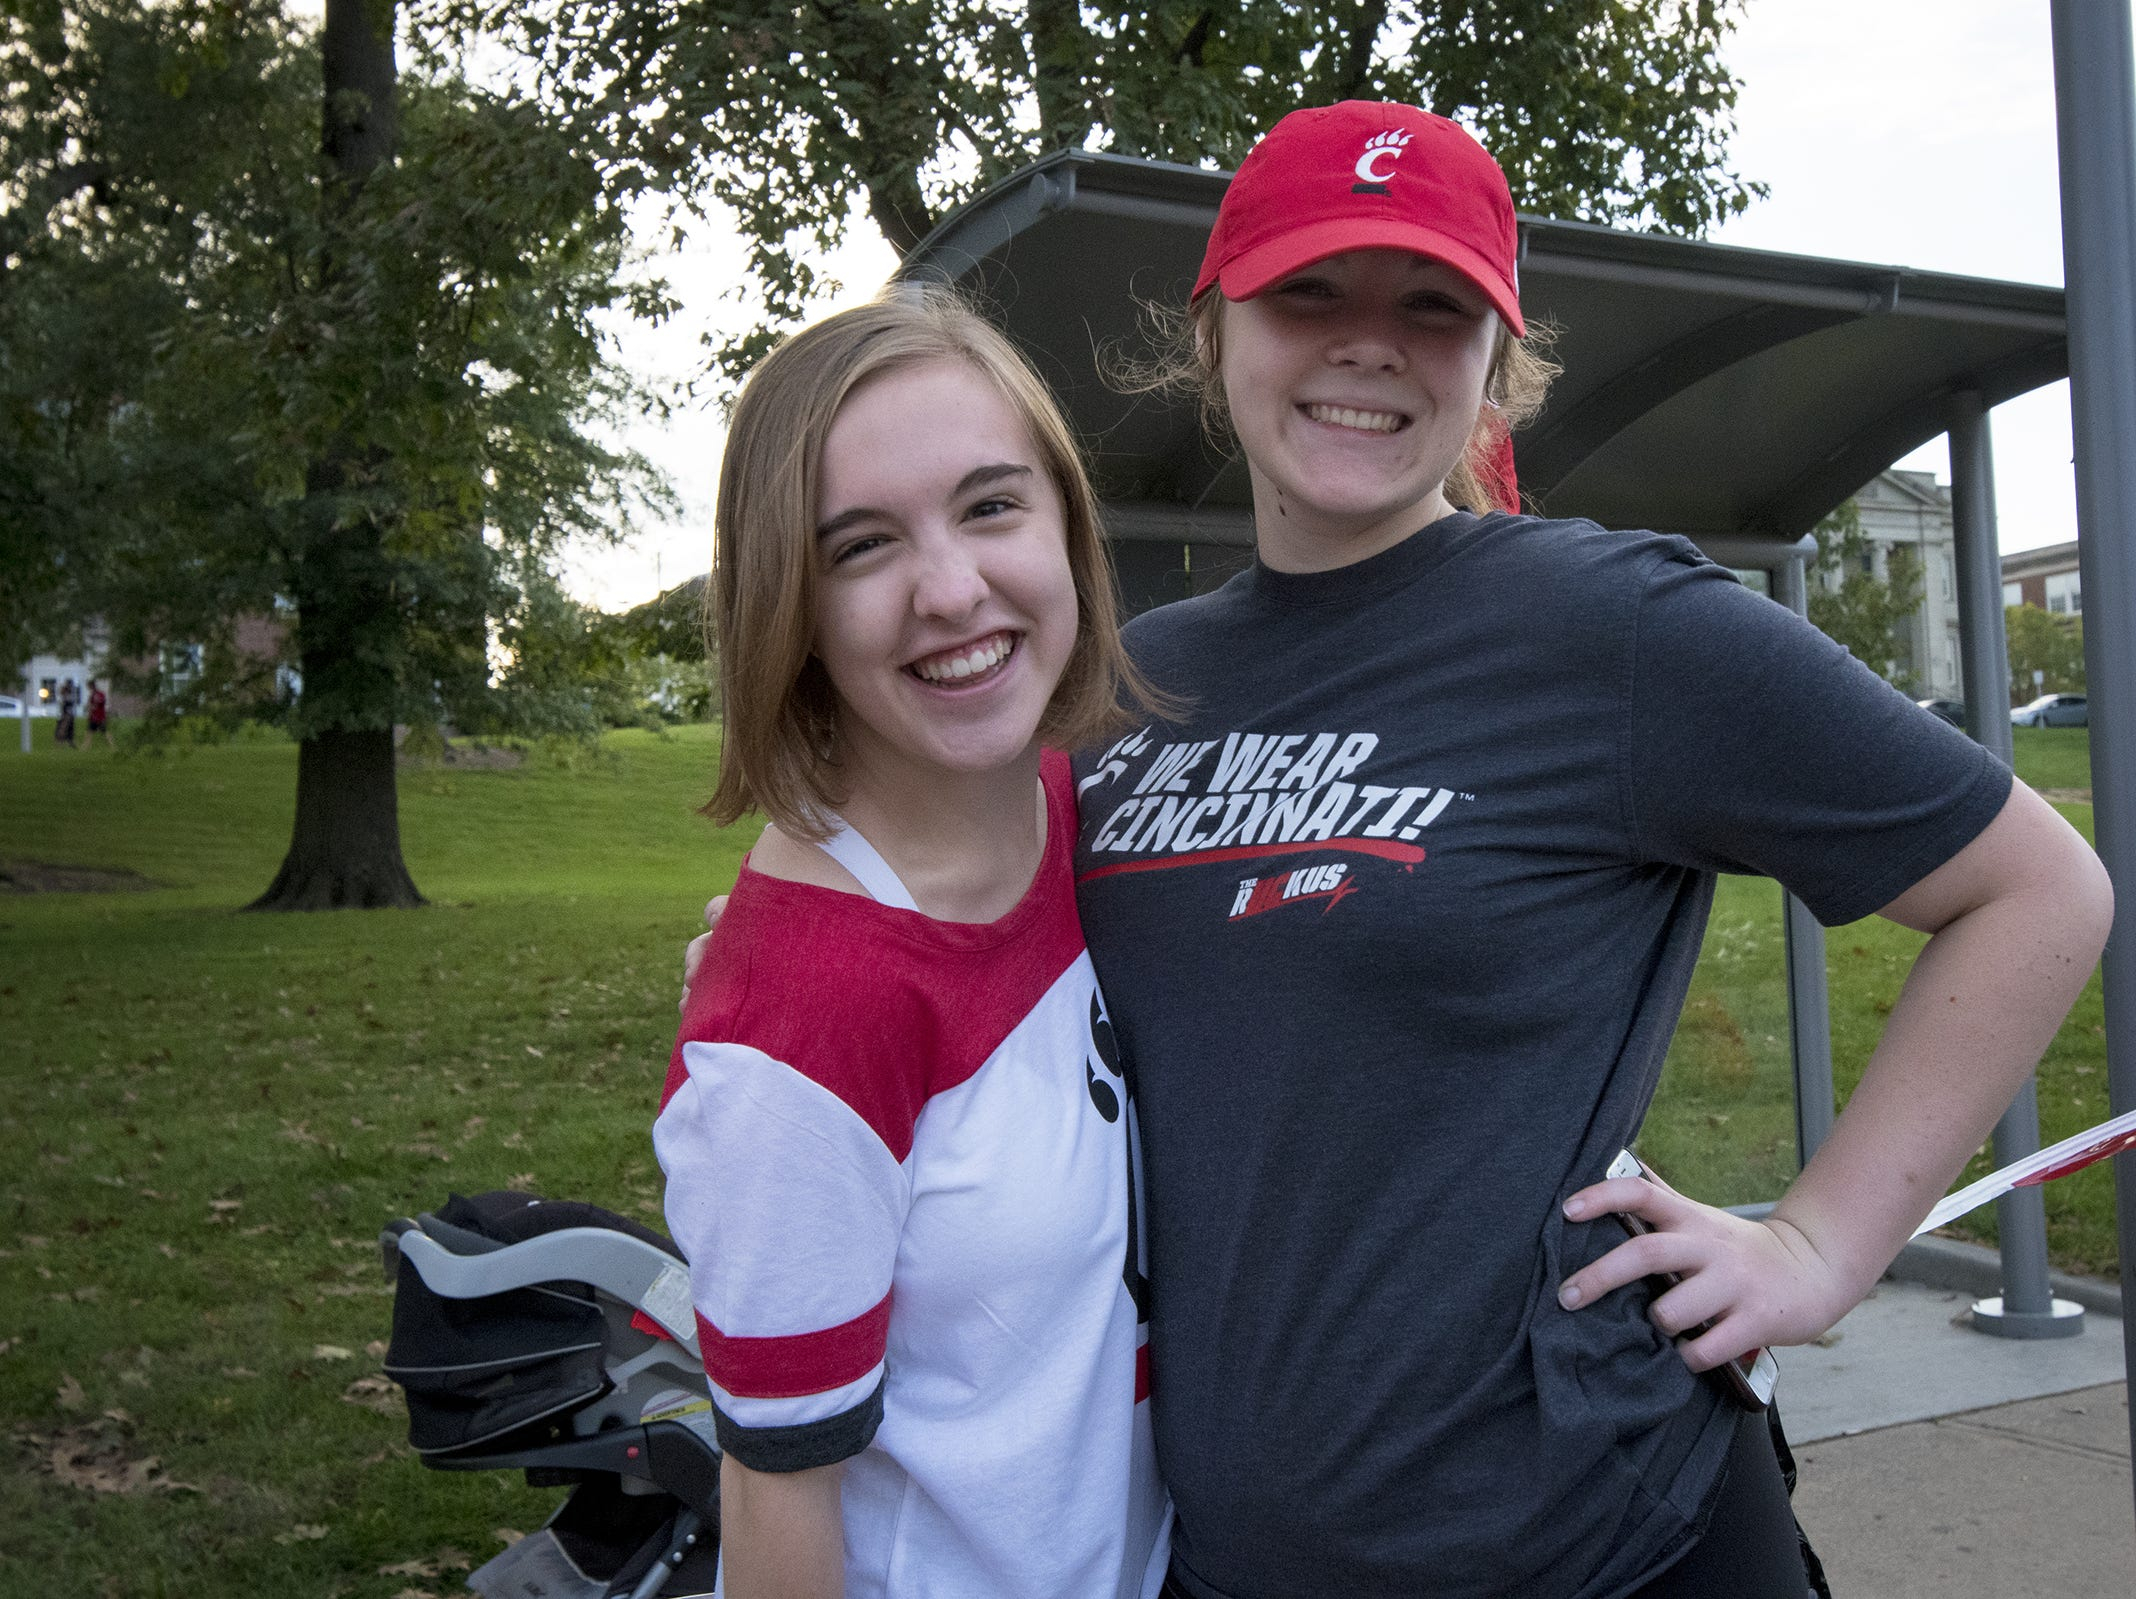 University of Cincinnati students Anne Simendinger and Gabby Bowers attend the Homecoming parade.